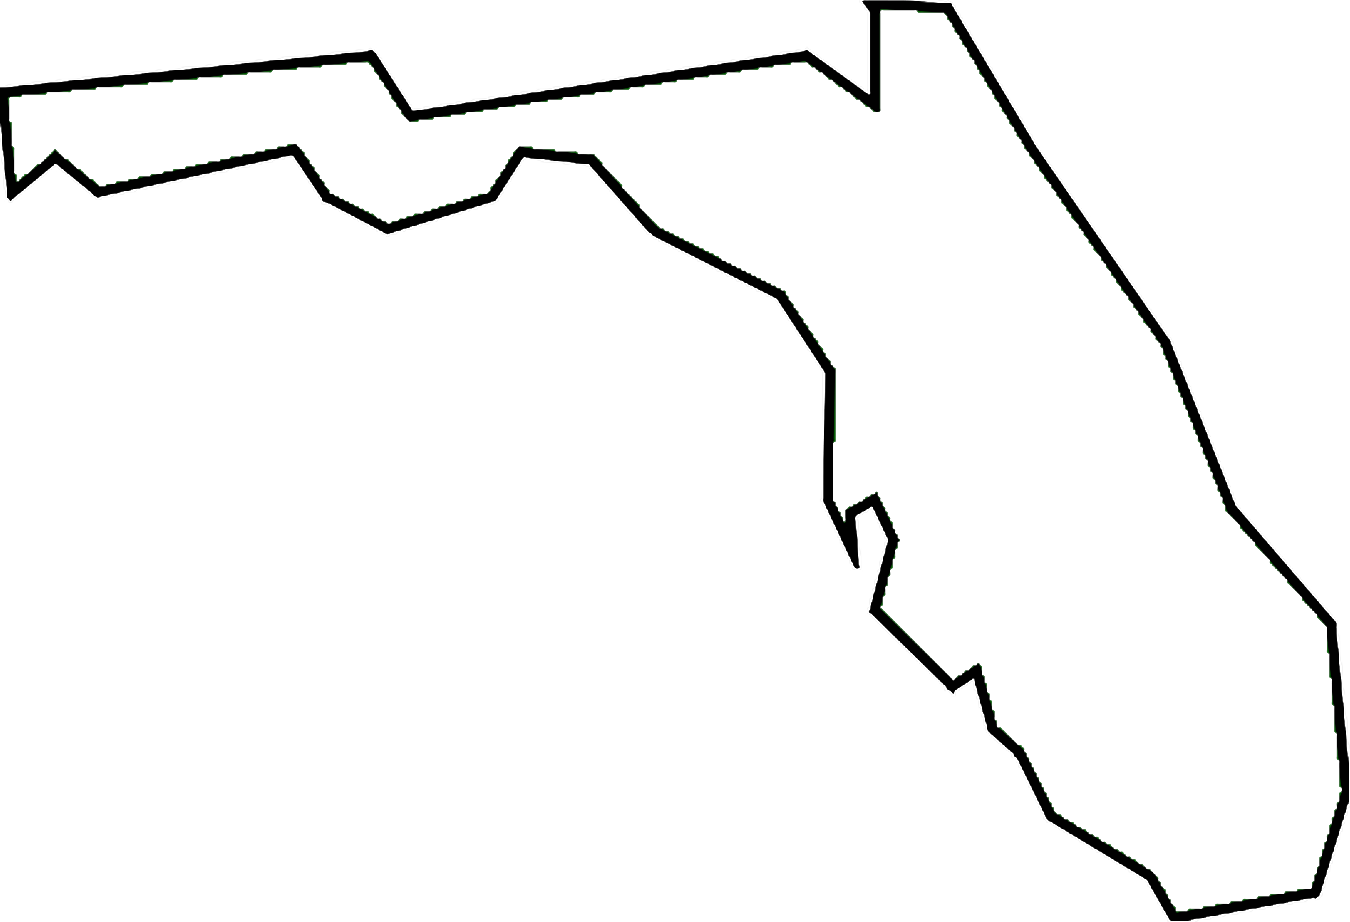 1350x922 State Of Florida Outline Clip Art